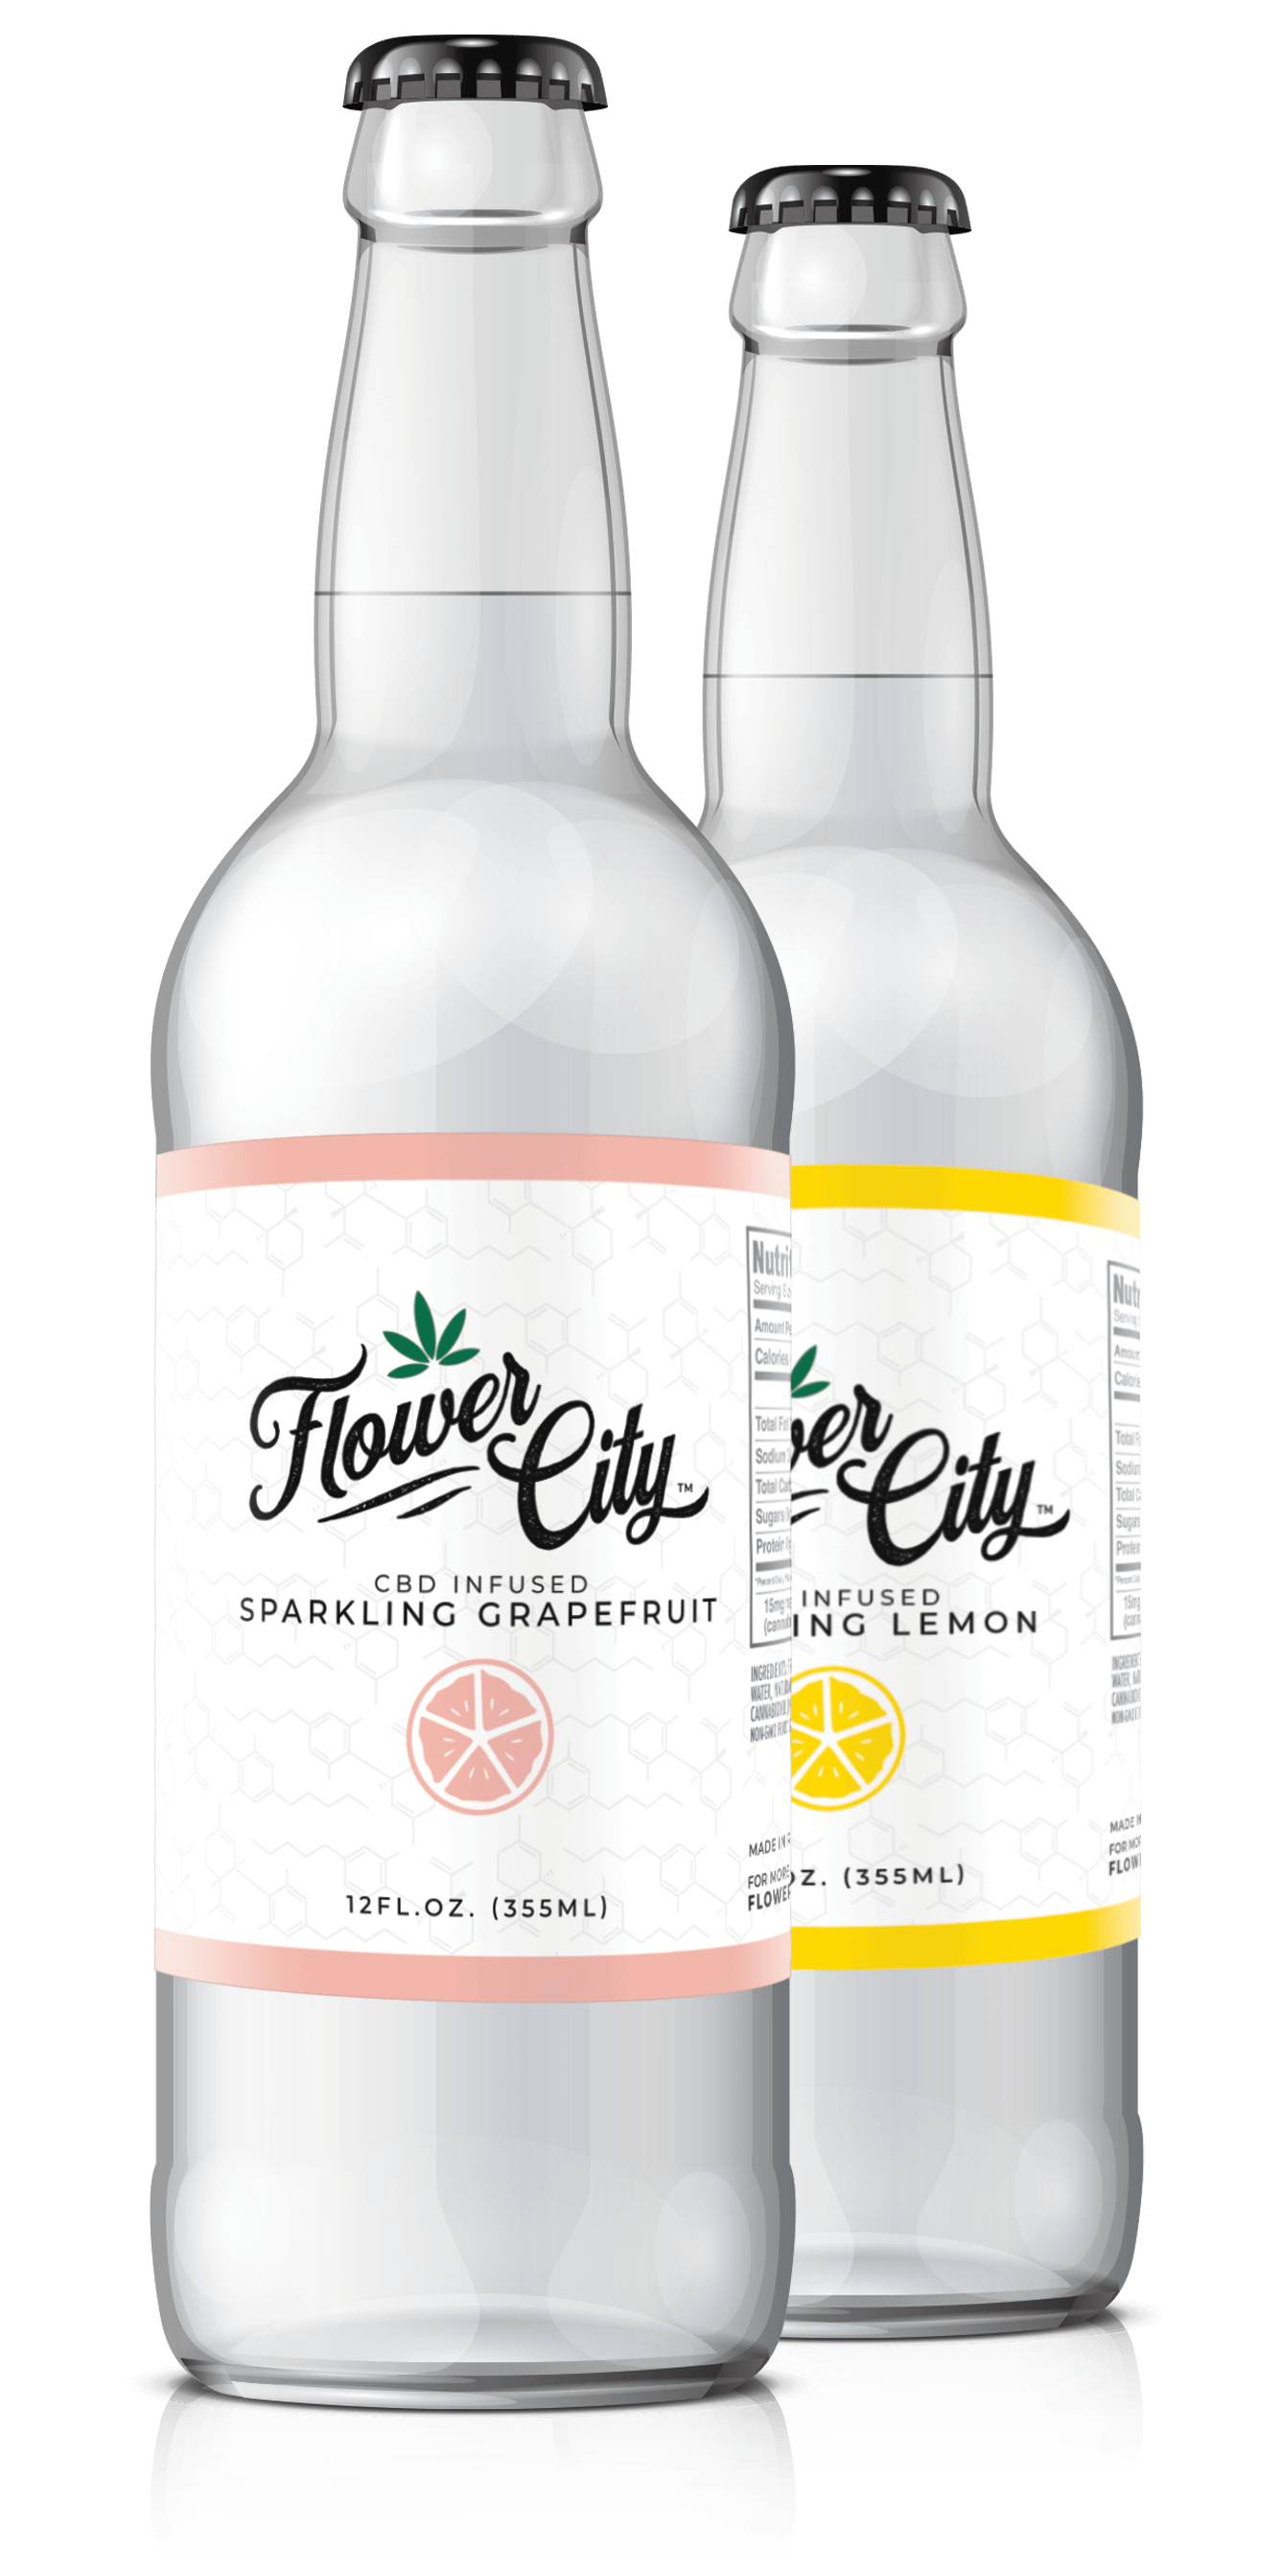 Flower City CBD bottles